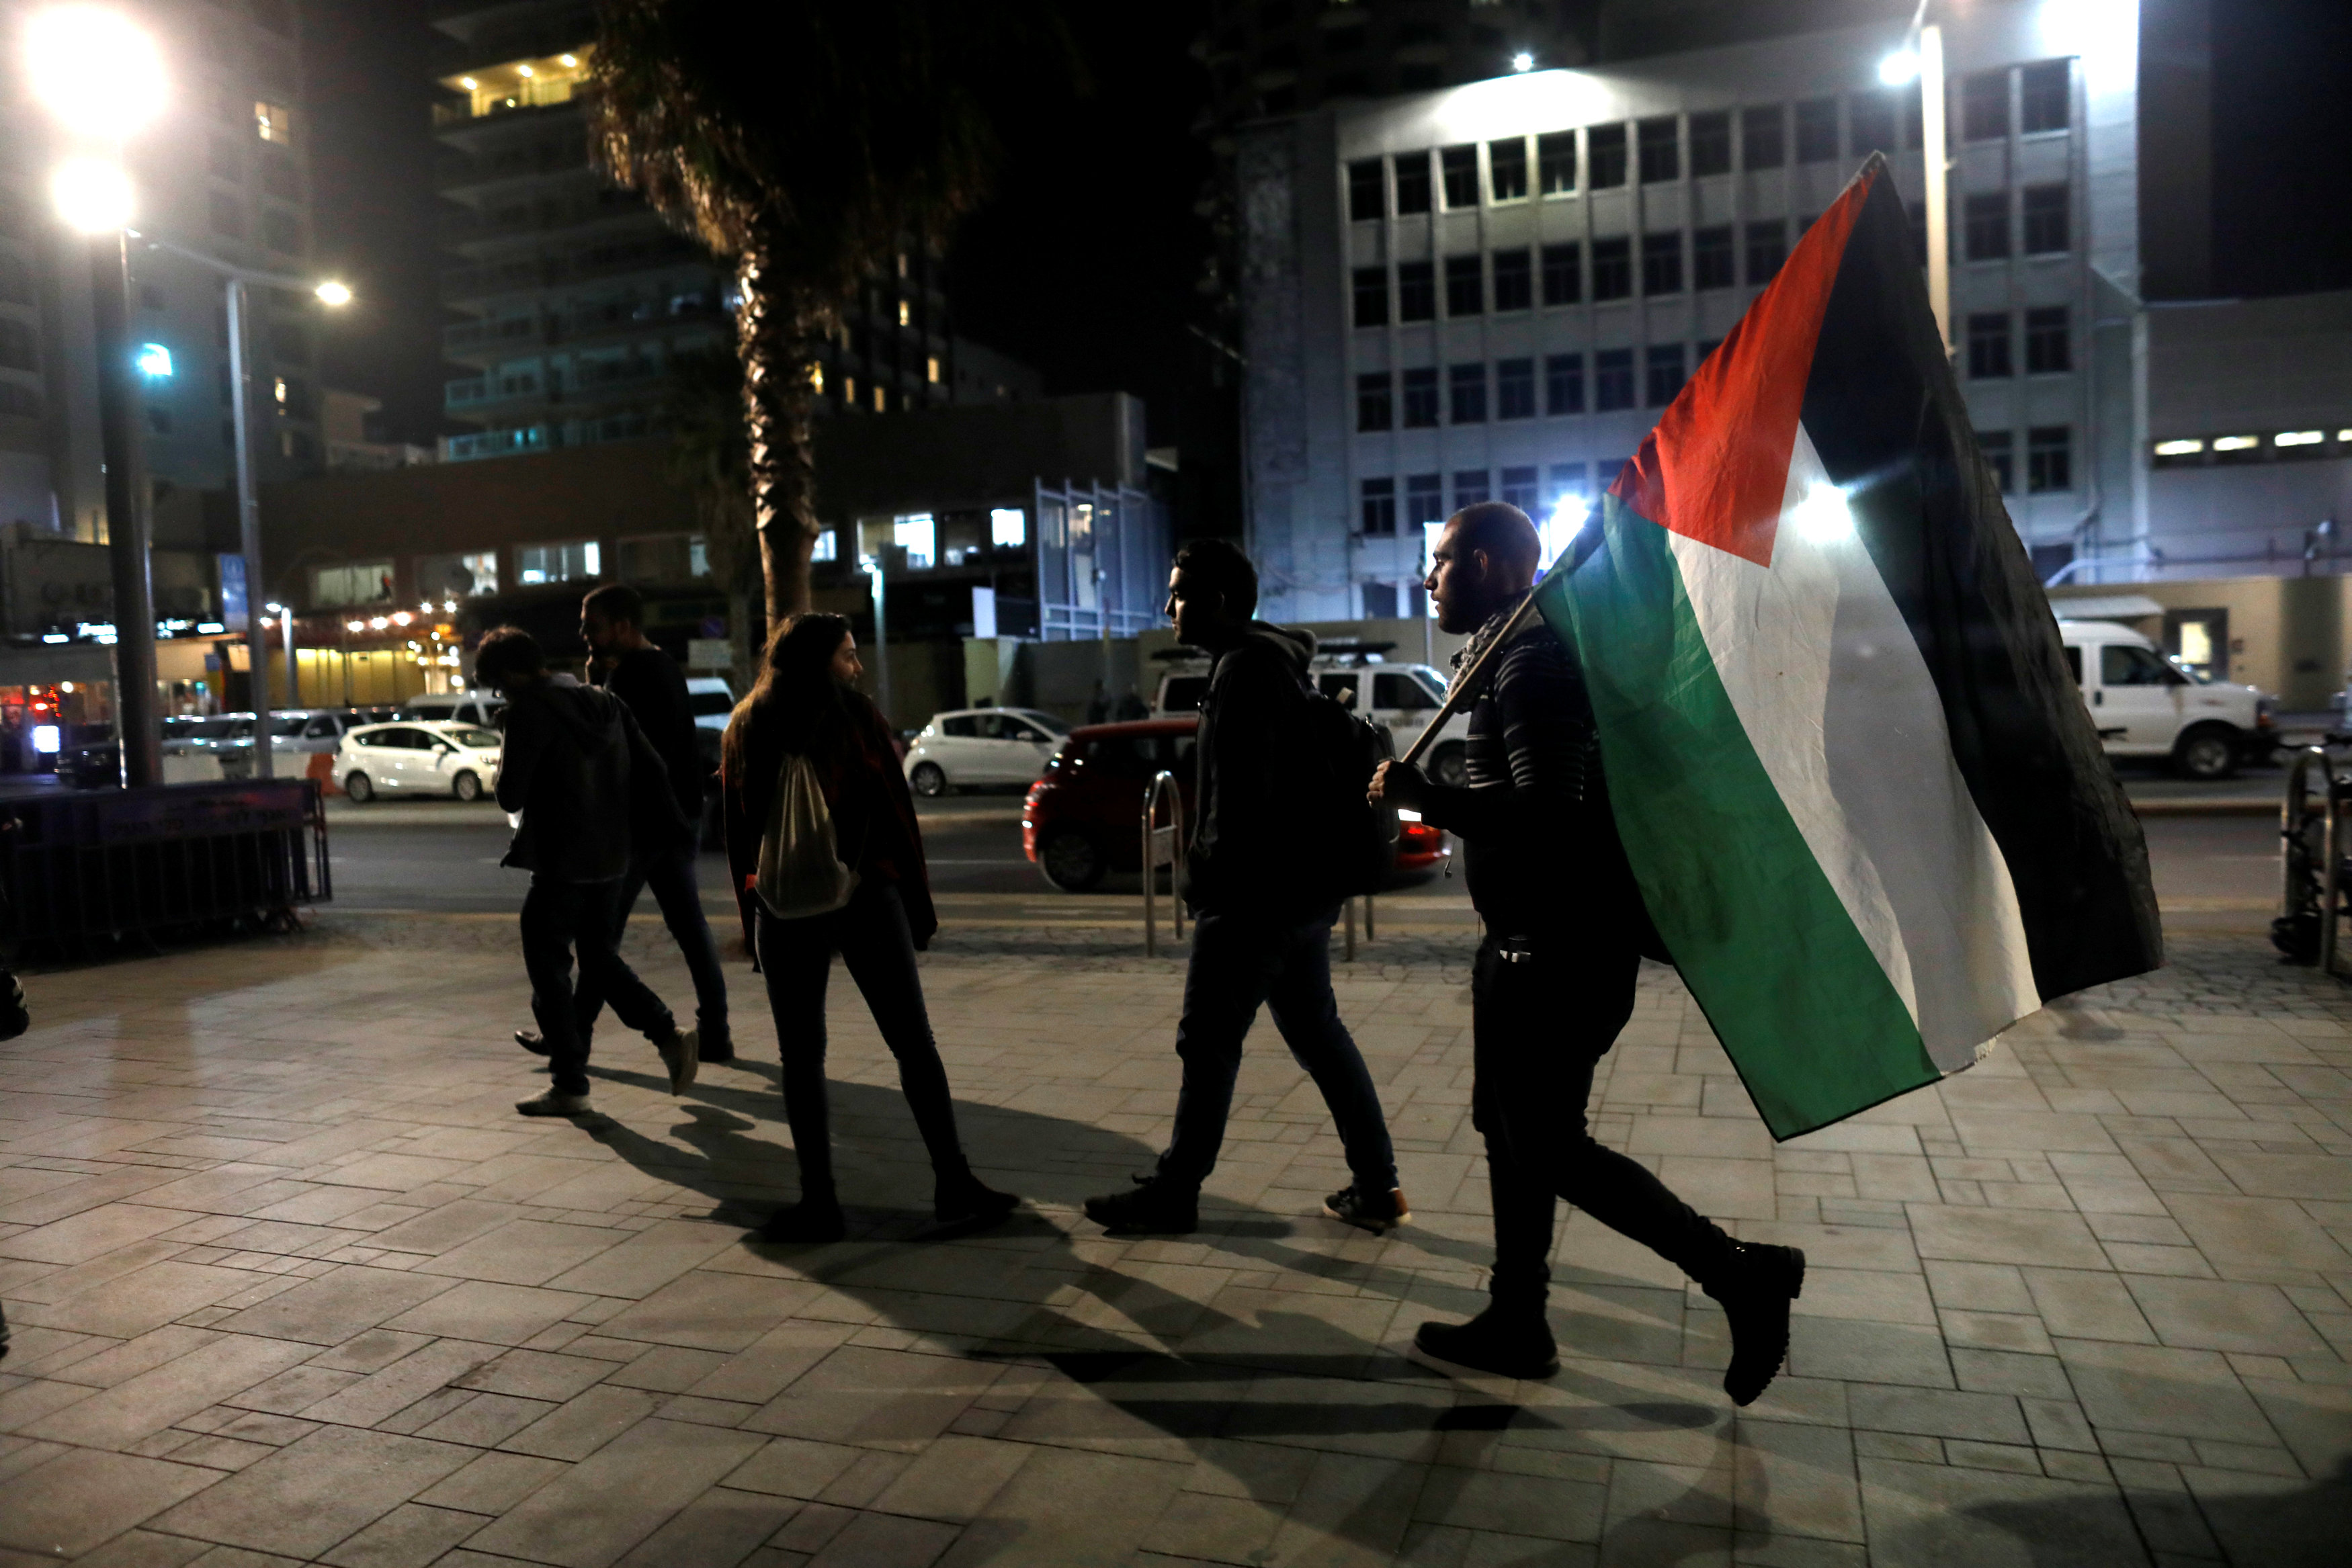 A protester carries a Palestinian flag at the end of a demonstration against U.S. President Donald Trump's decision to recognise Jerusalem as Israel's capital opposite to the American embassy in Tel Aviv, Israel December 12, 2017.